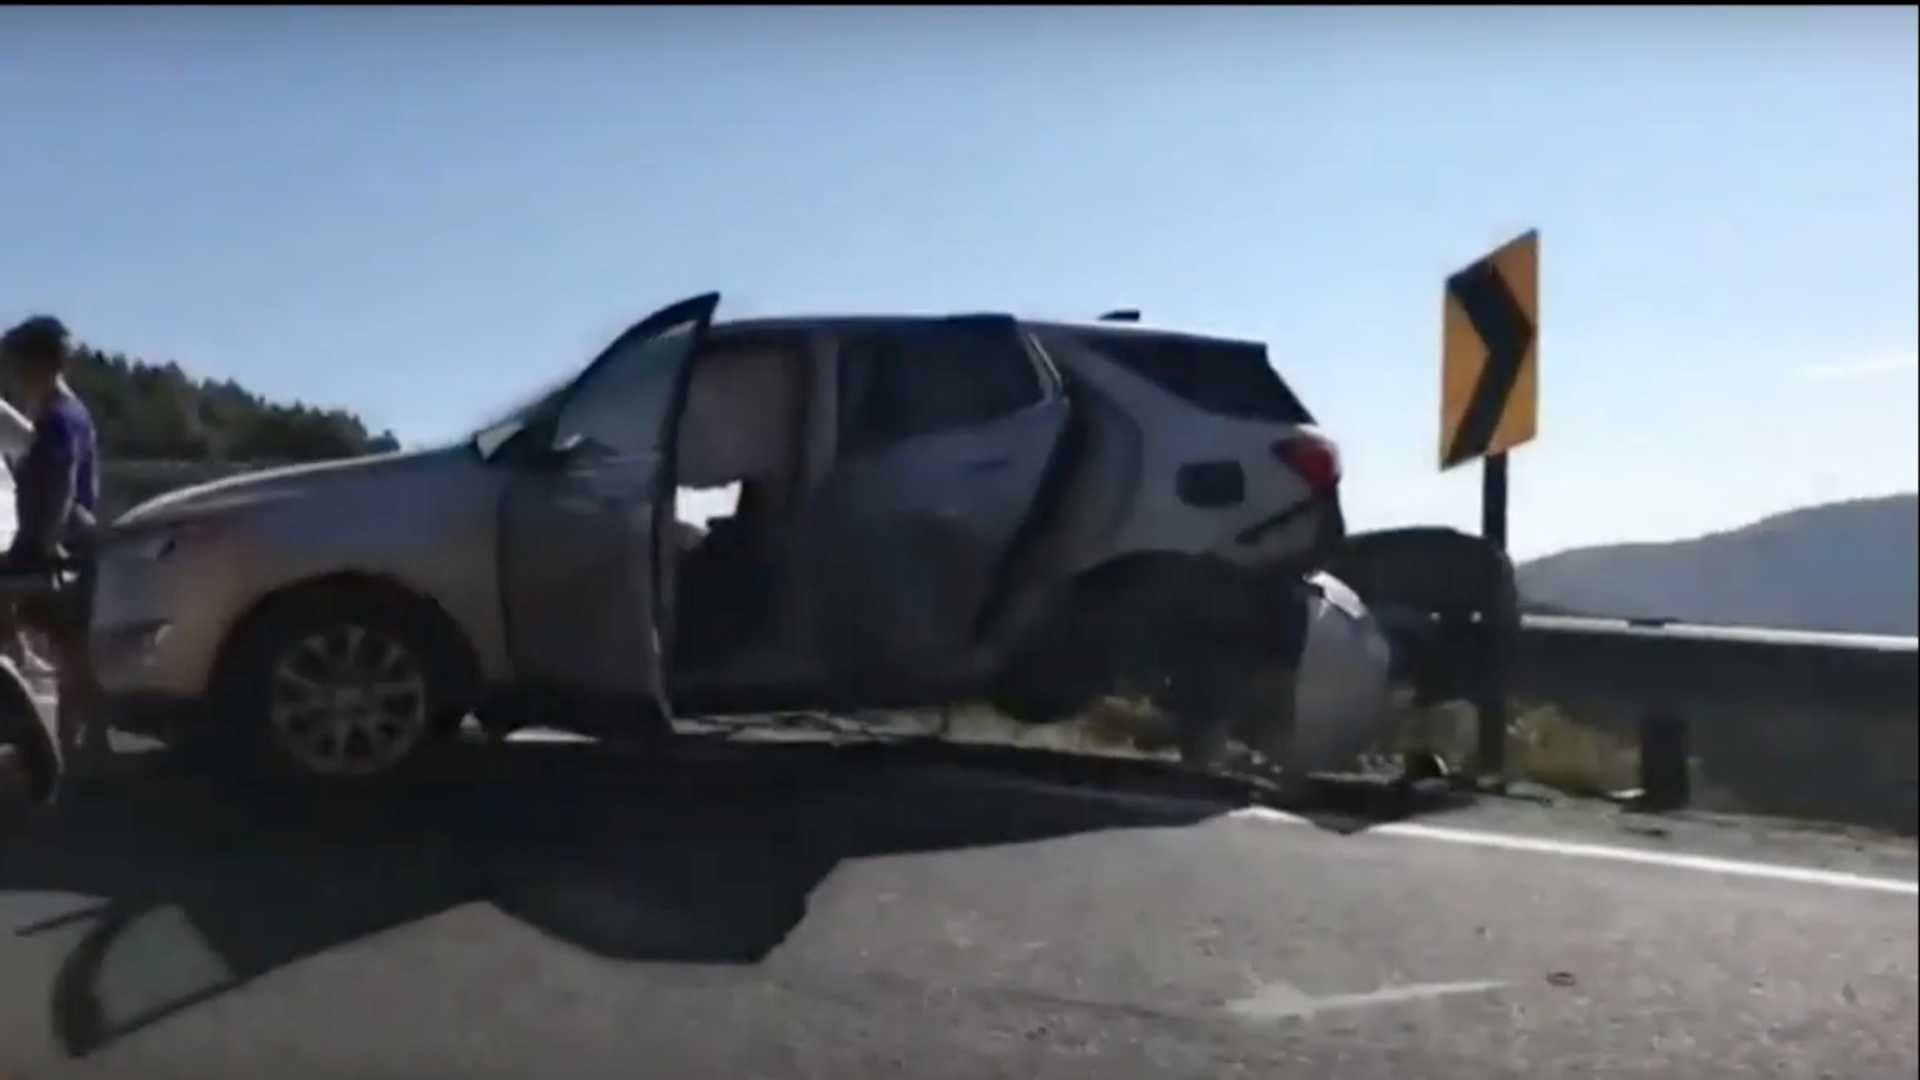 Ouch! Chevrolet Corvette Stingray C8 wrecked - ForceGT com